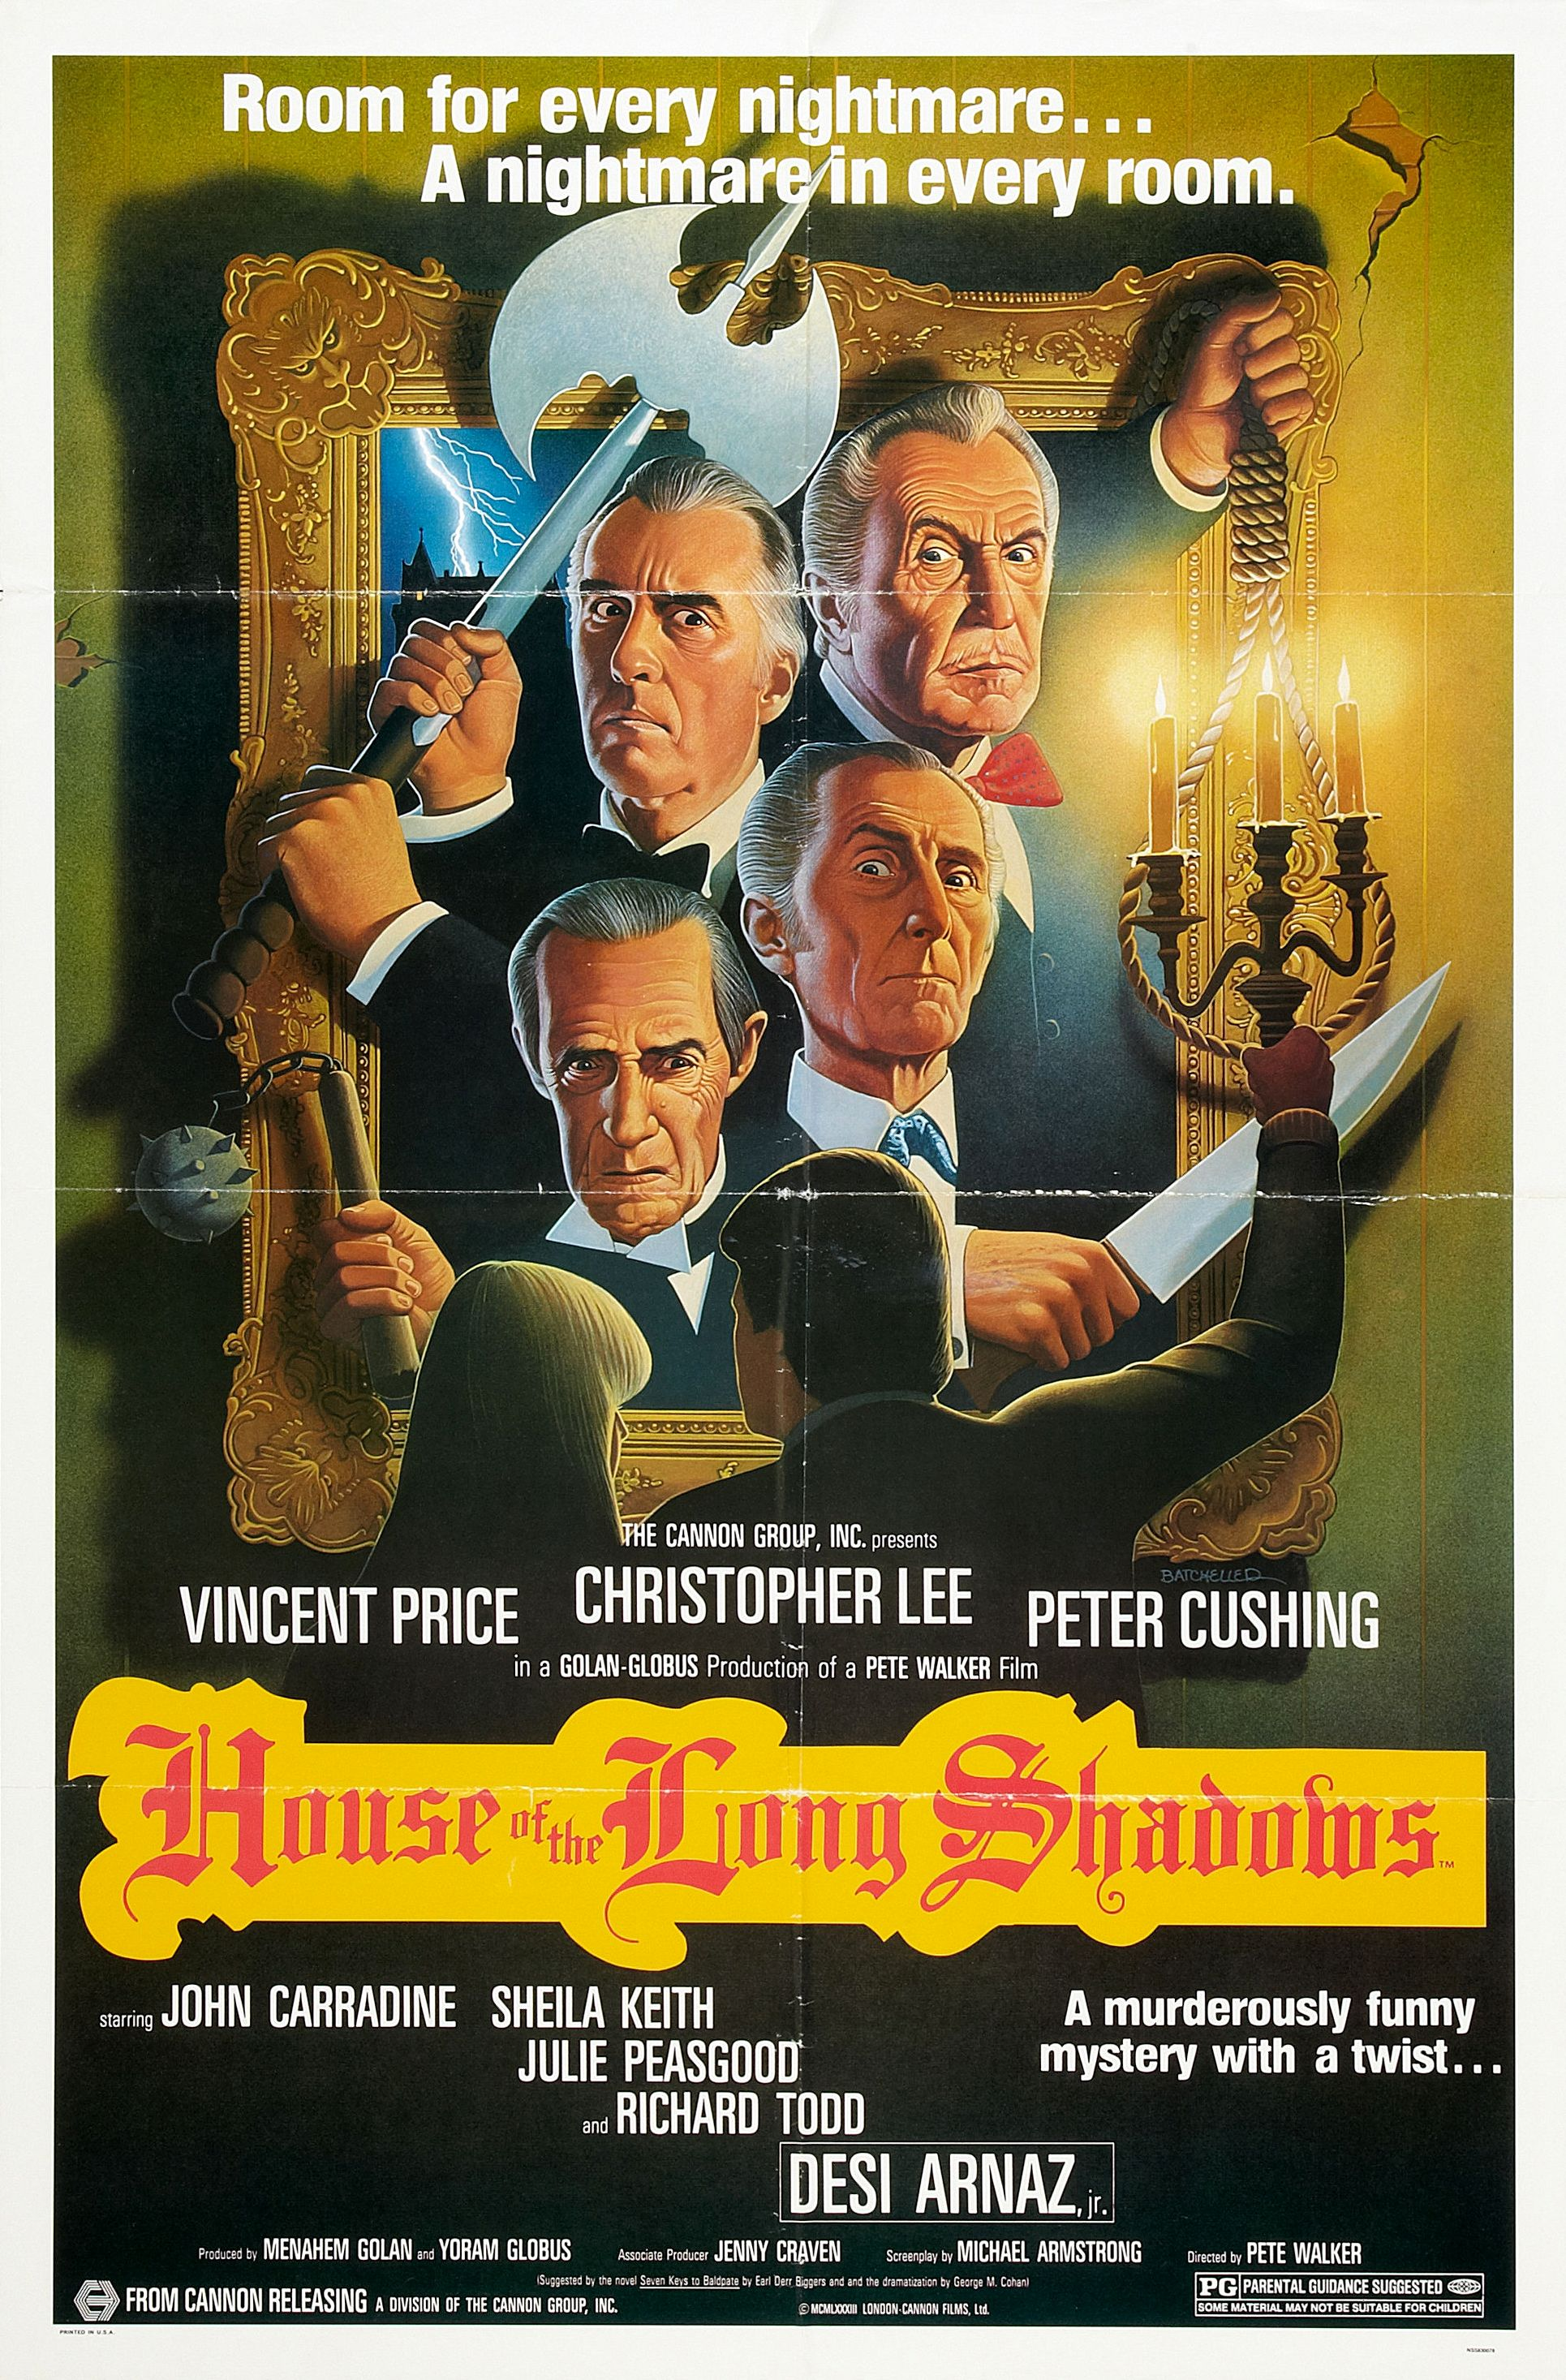 Movie Poster for &quotHouse of the Long Shadows&quot